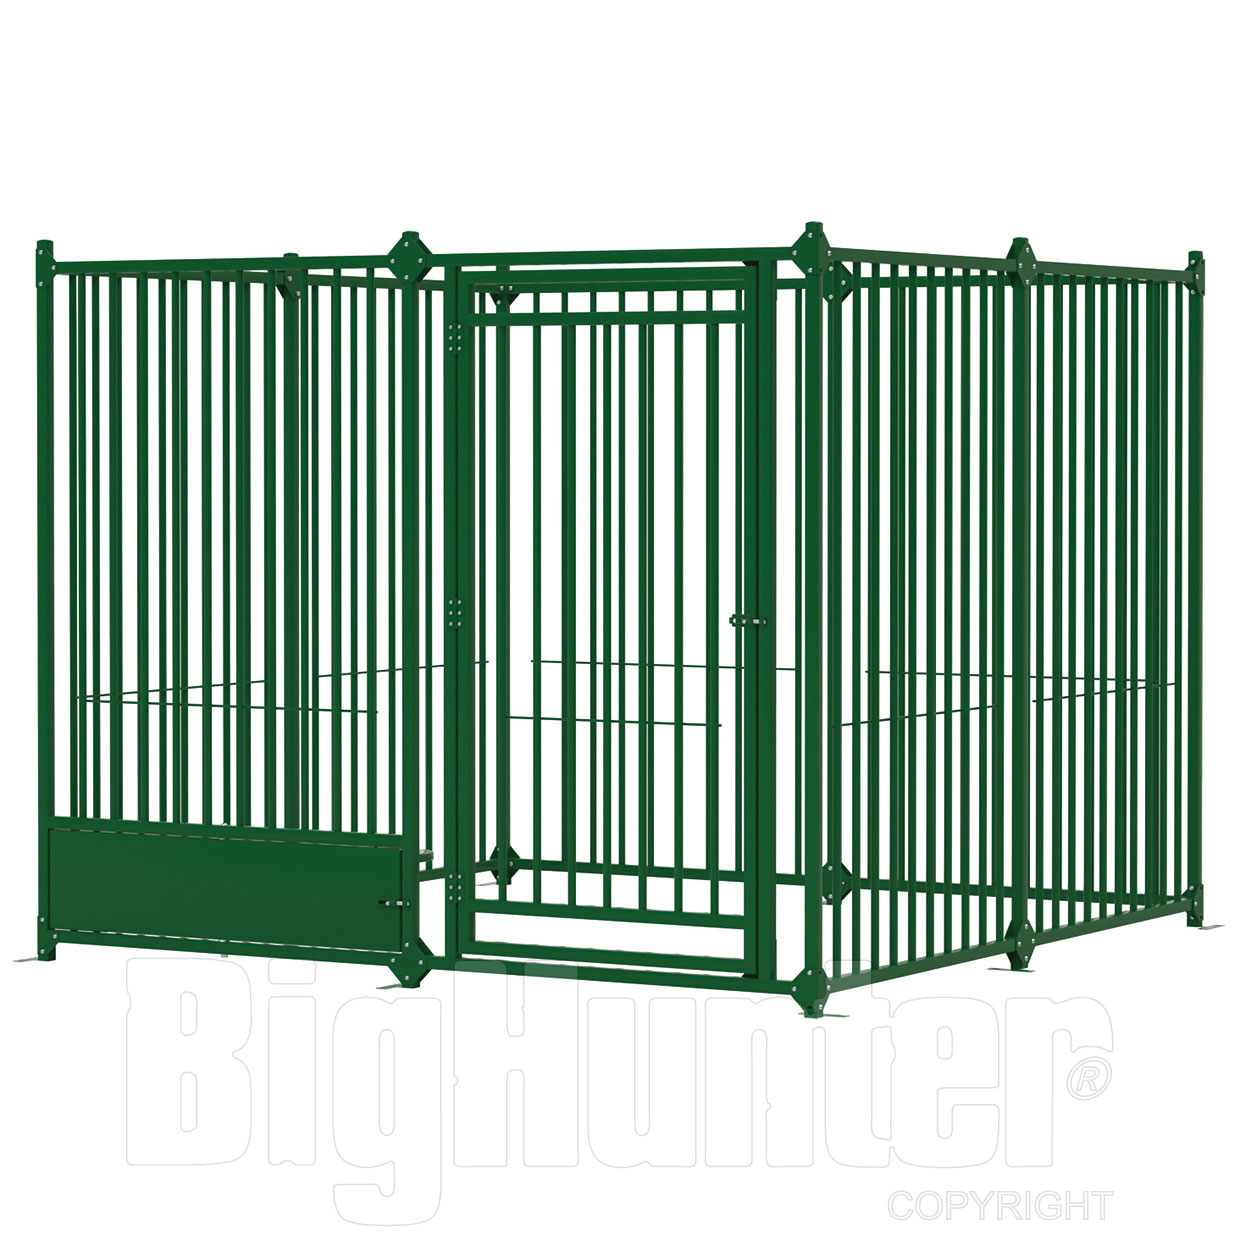 Ferplast recinto per cani modulare dog pen 2x2 - Recinto mobile per cani ...